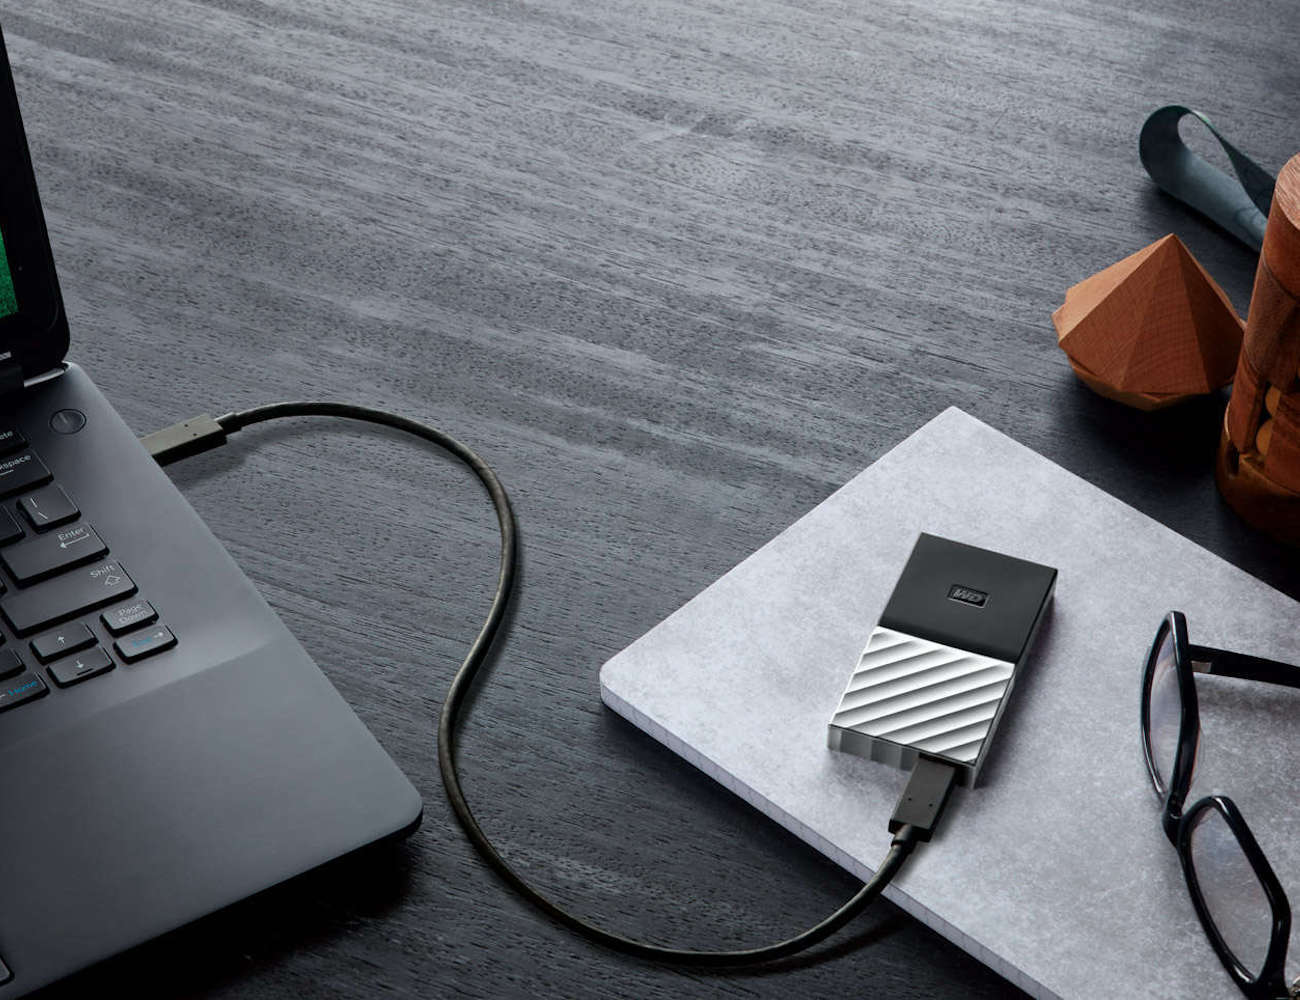 WD My Passport Portable SSD is small yet mighty